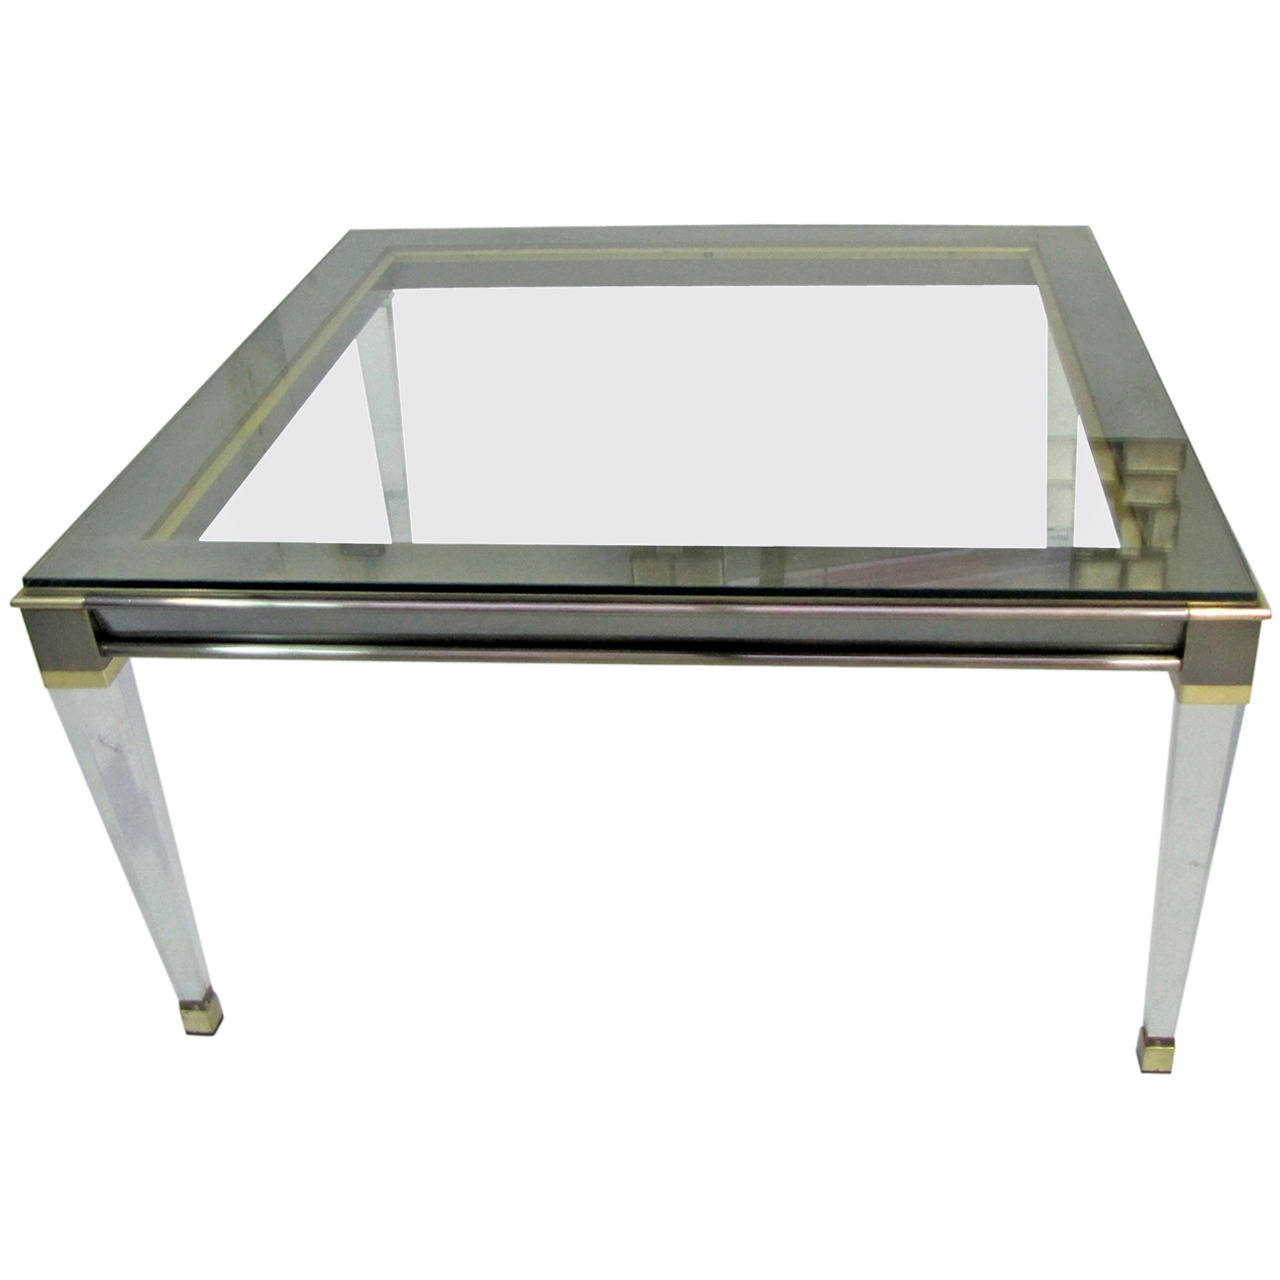 Table basse de belgo chrome belgique poque 1970 - Table basse en plexi ...